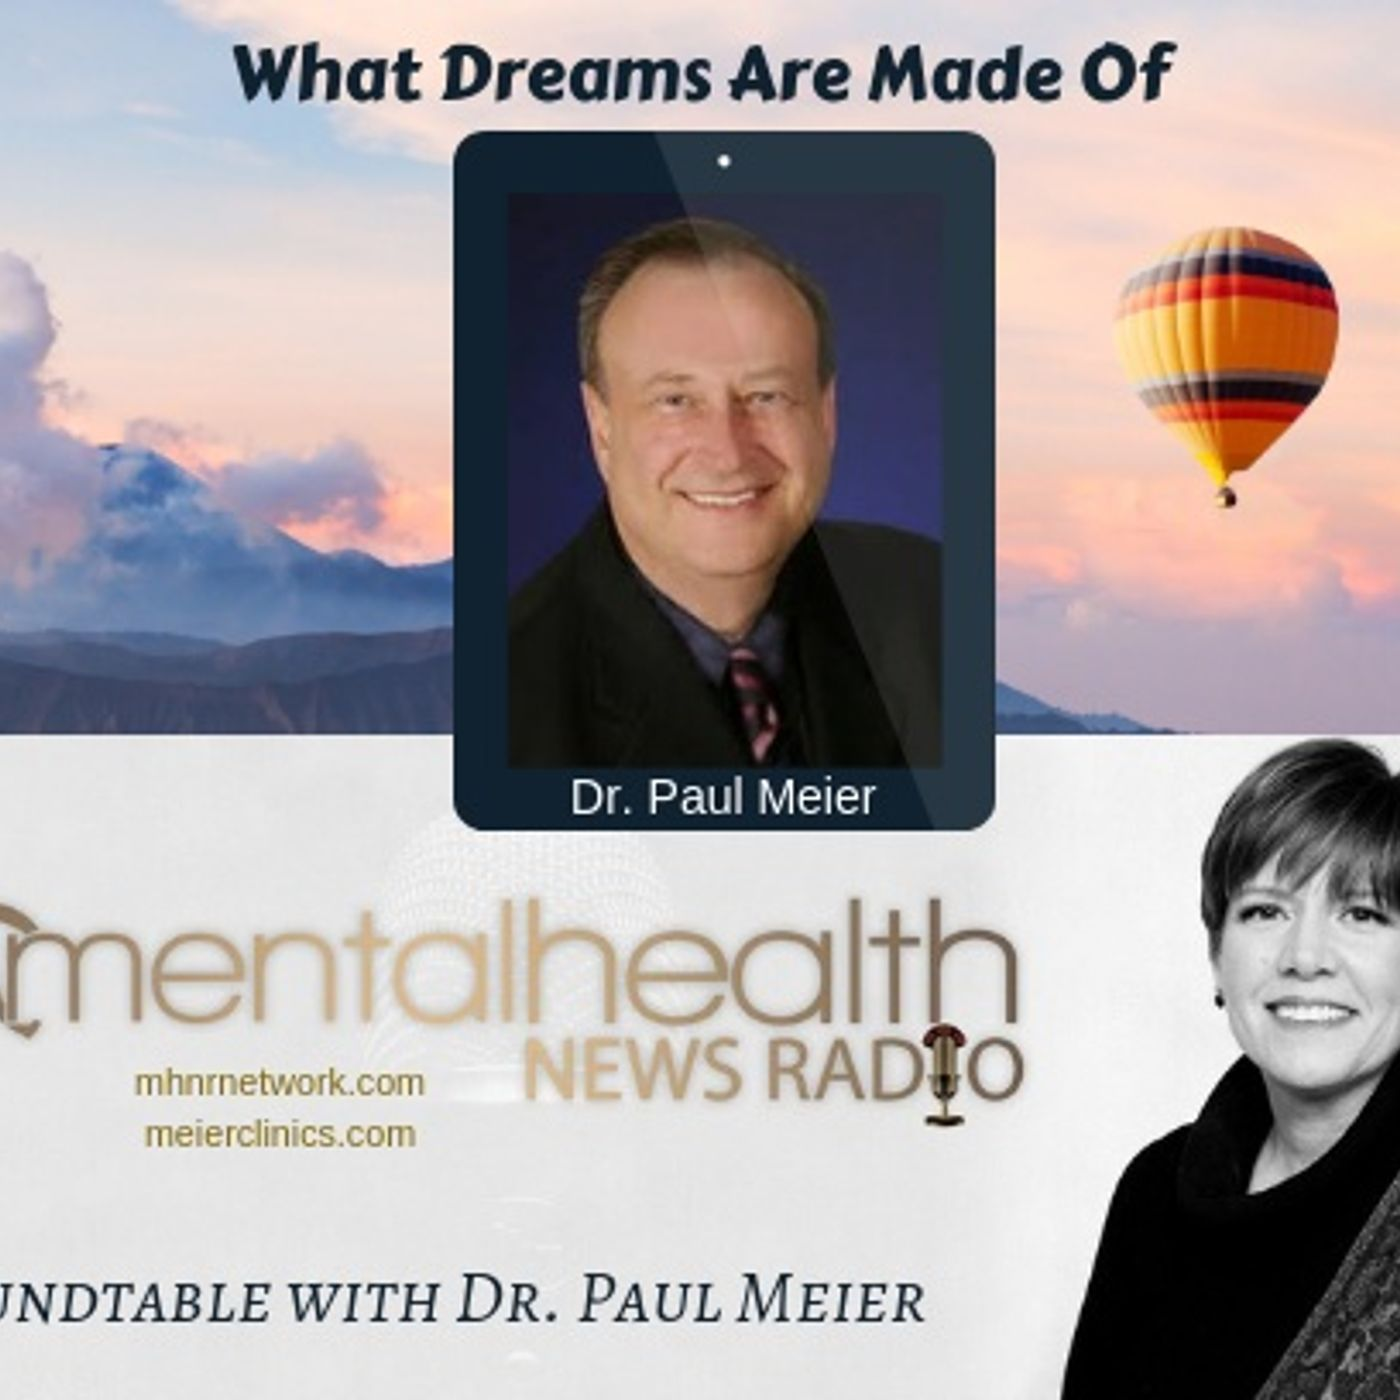 Mental Health News Radio - Roundtable with Dr. Paul Meier: What Dreams Are Made Of